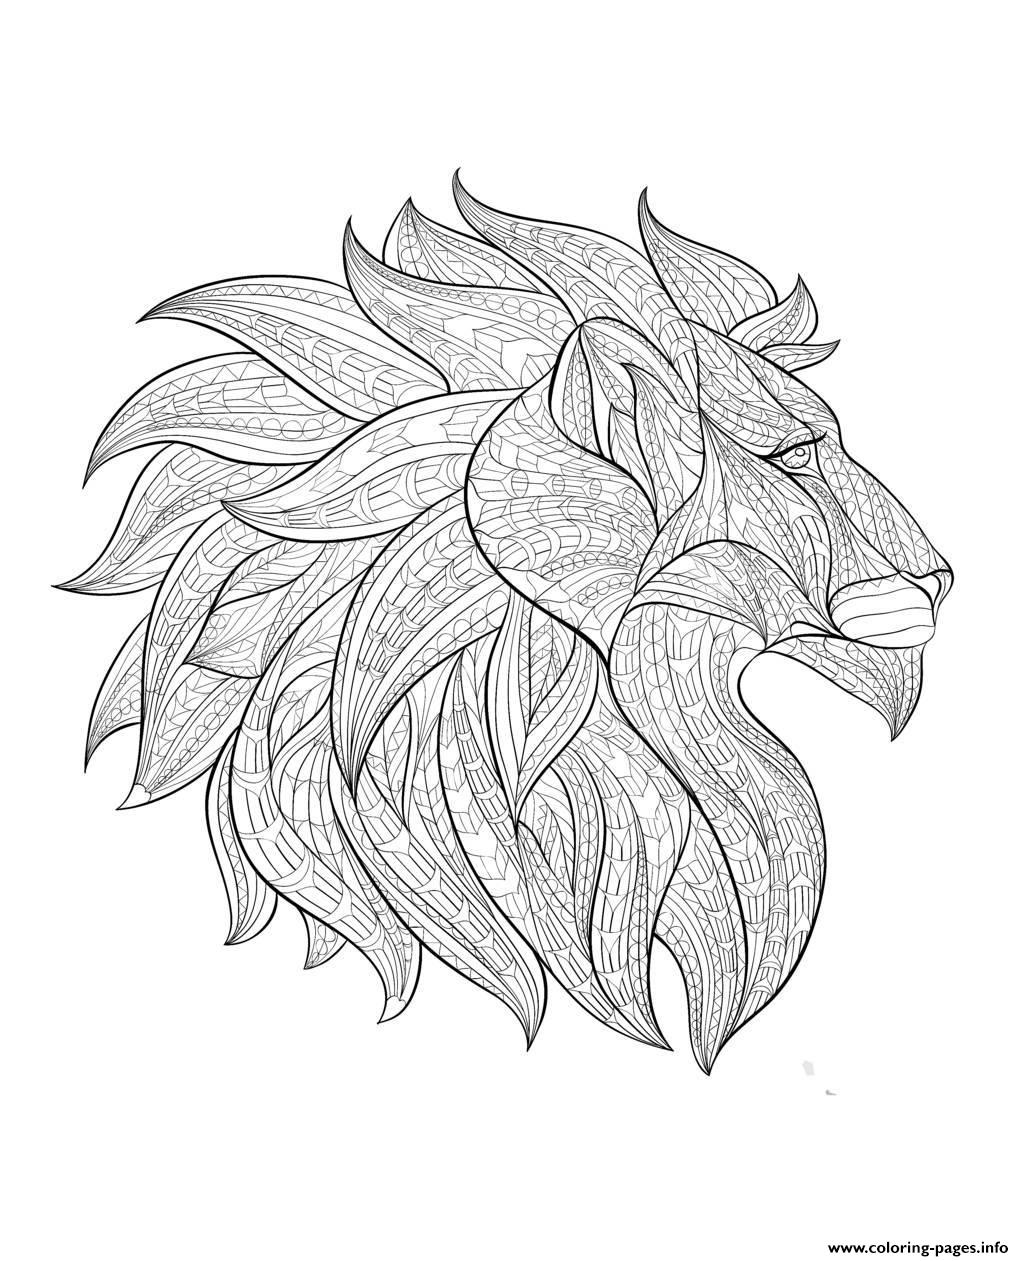 Adult Lion Head Profile Coloring